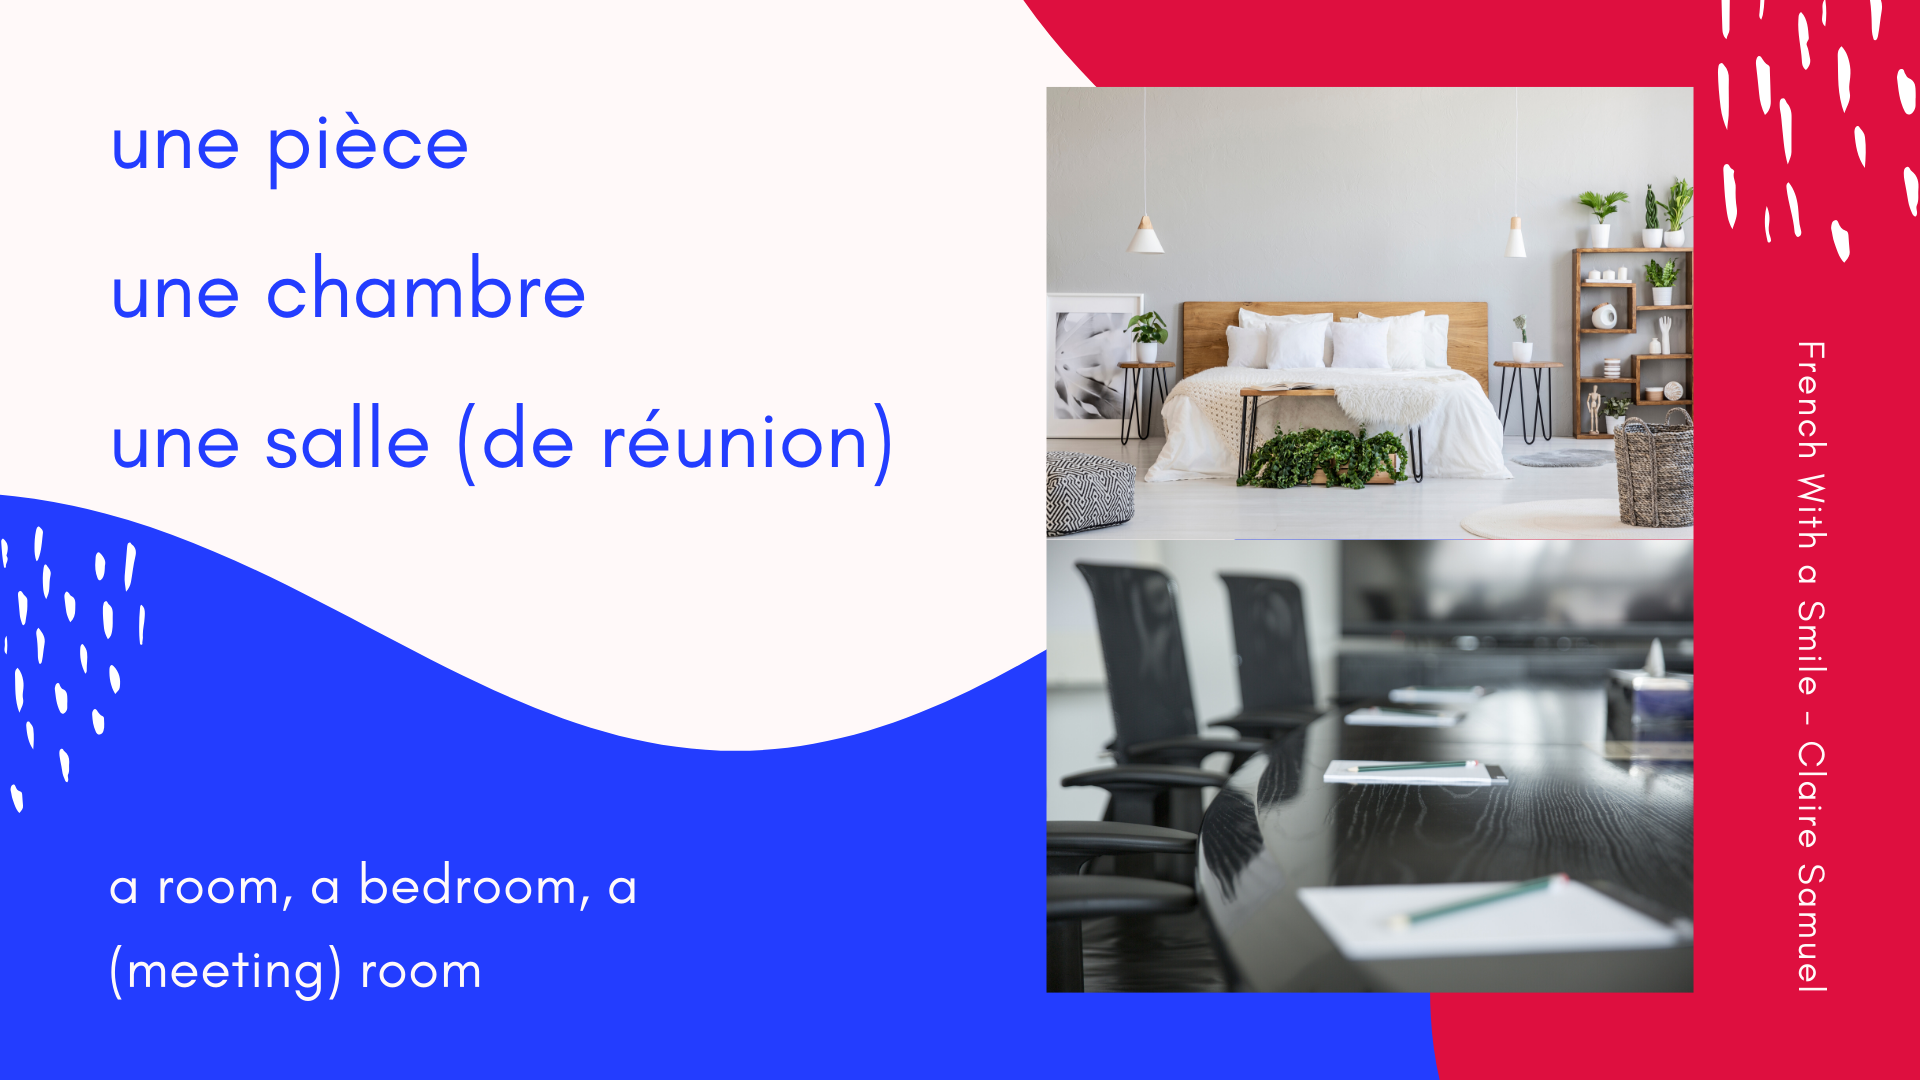 Beginner #23 French vocabulary lesson around the rooms of the house or Les pièces de la maison